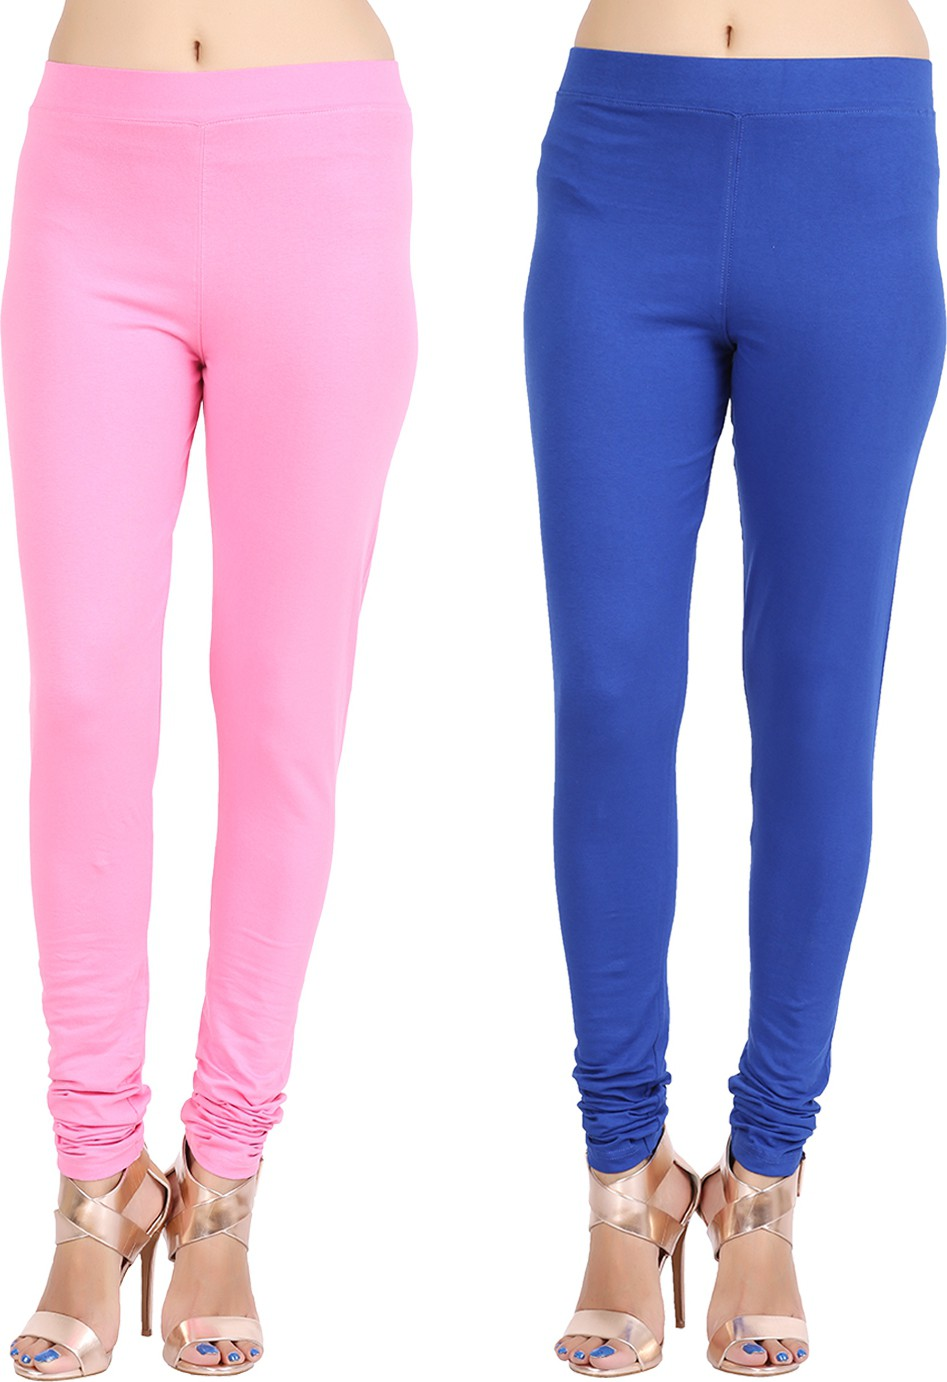 Lula Ms Womens Pink, Blue Leggings(Pack of 2)